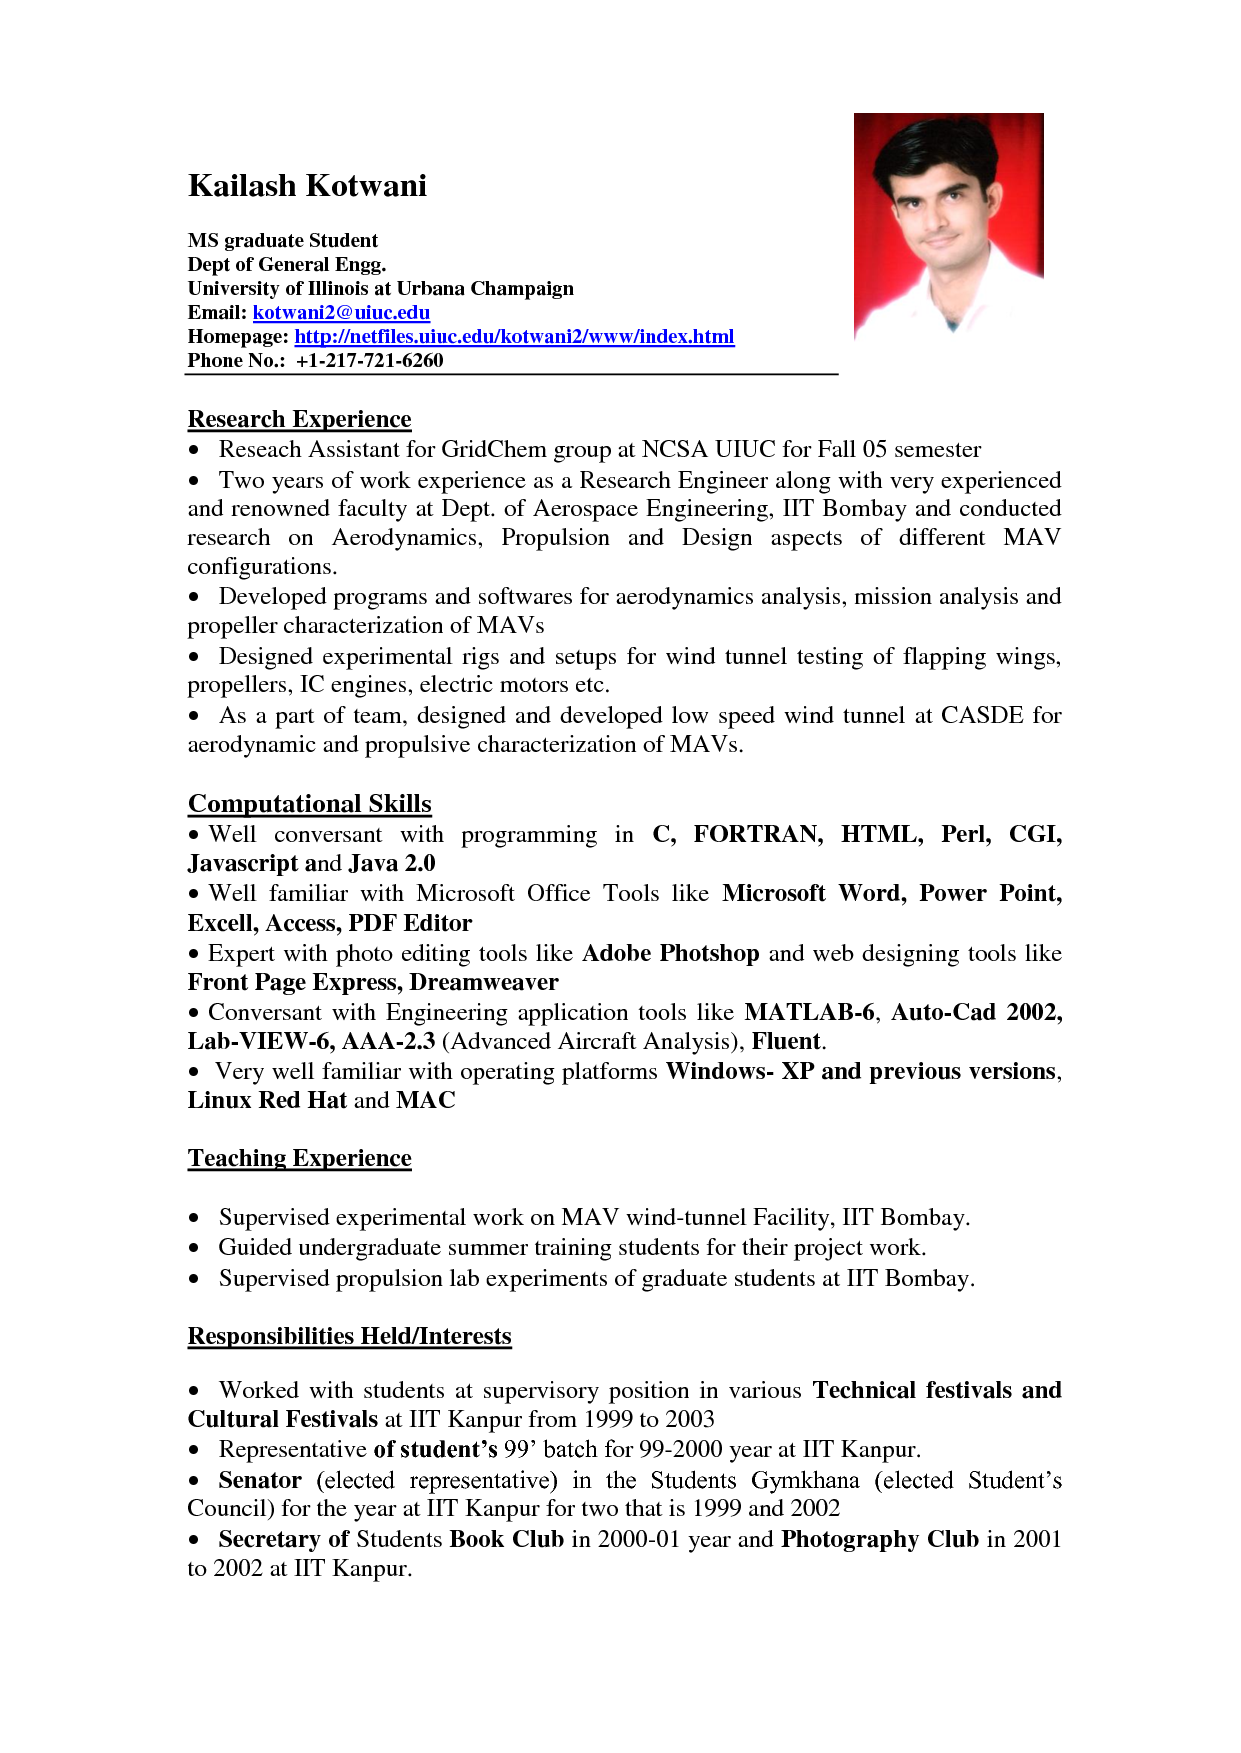 High School Student Resume Examples No Work Experience No Work Experience  Resume Content. How To Write A Resume Resume .  Resume Examples For High School Students With No Work Experience